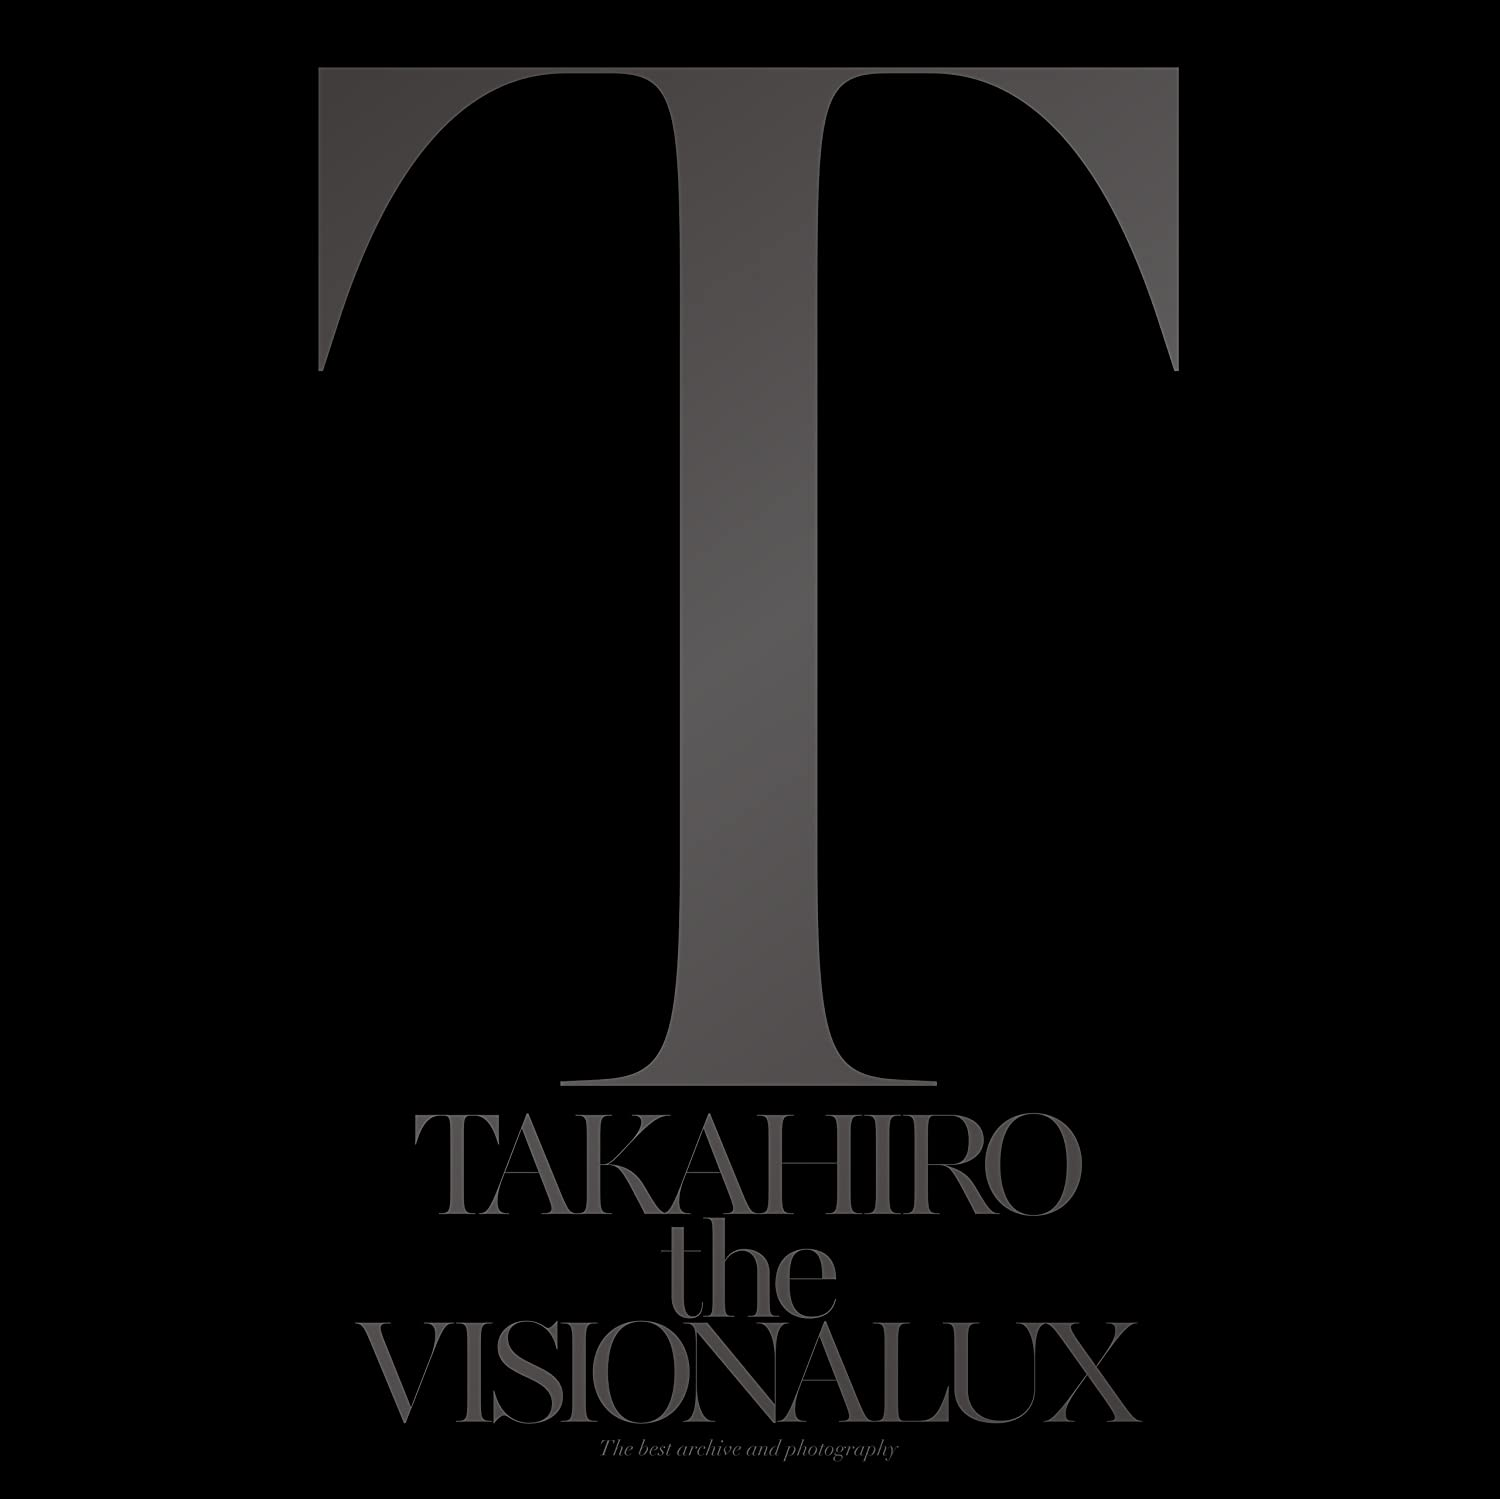 rhythm zone EXILE TAKAHIRO the VISIONALUX(CD+DVD)の画像